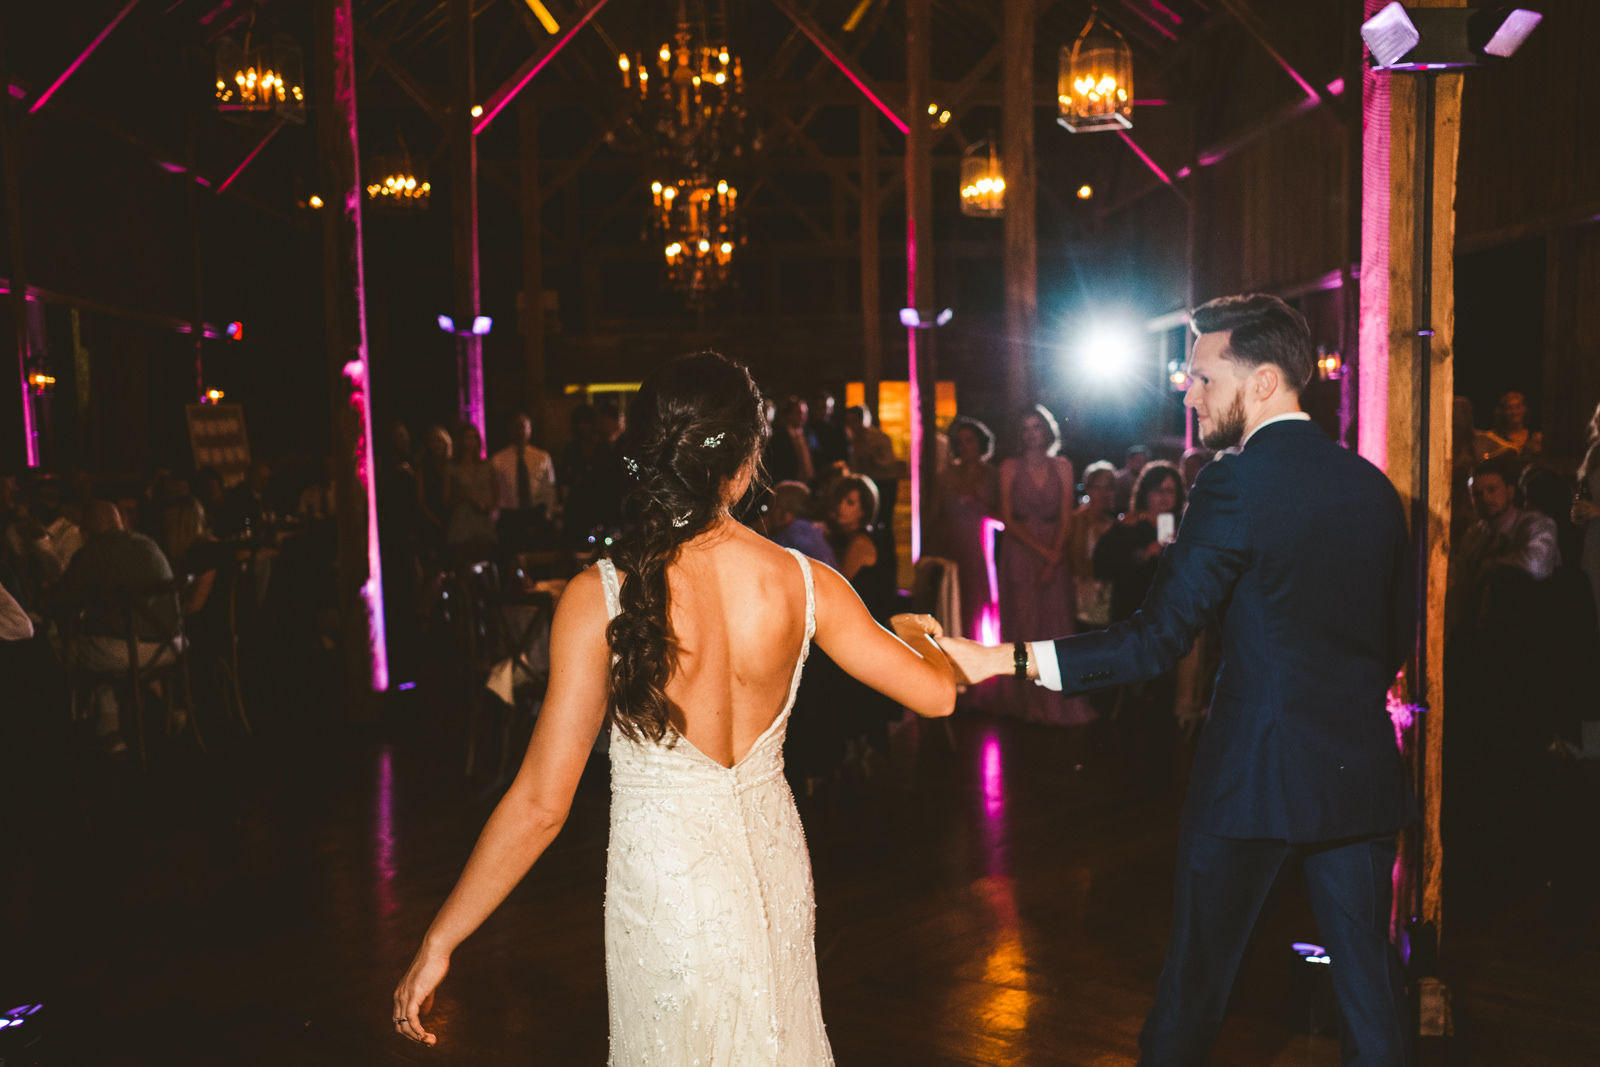 Couple performs the Waltz for their first dance.